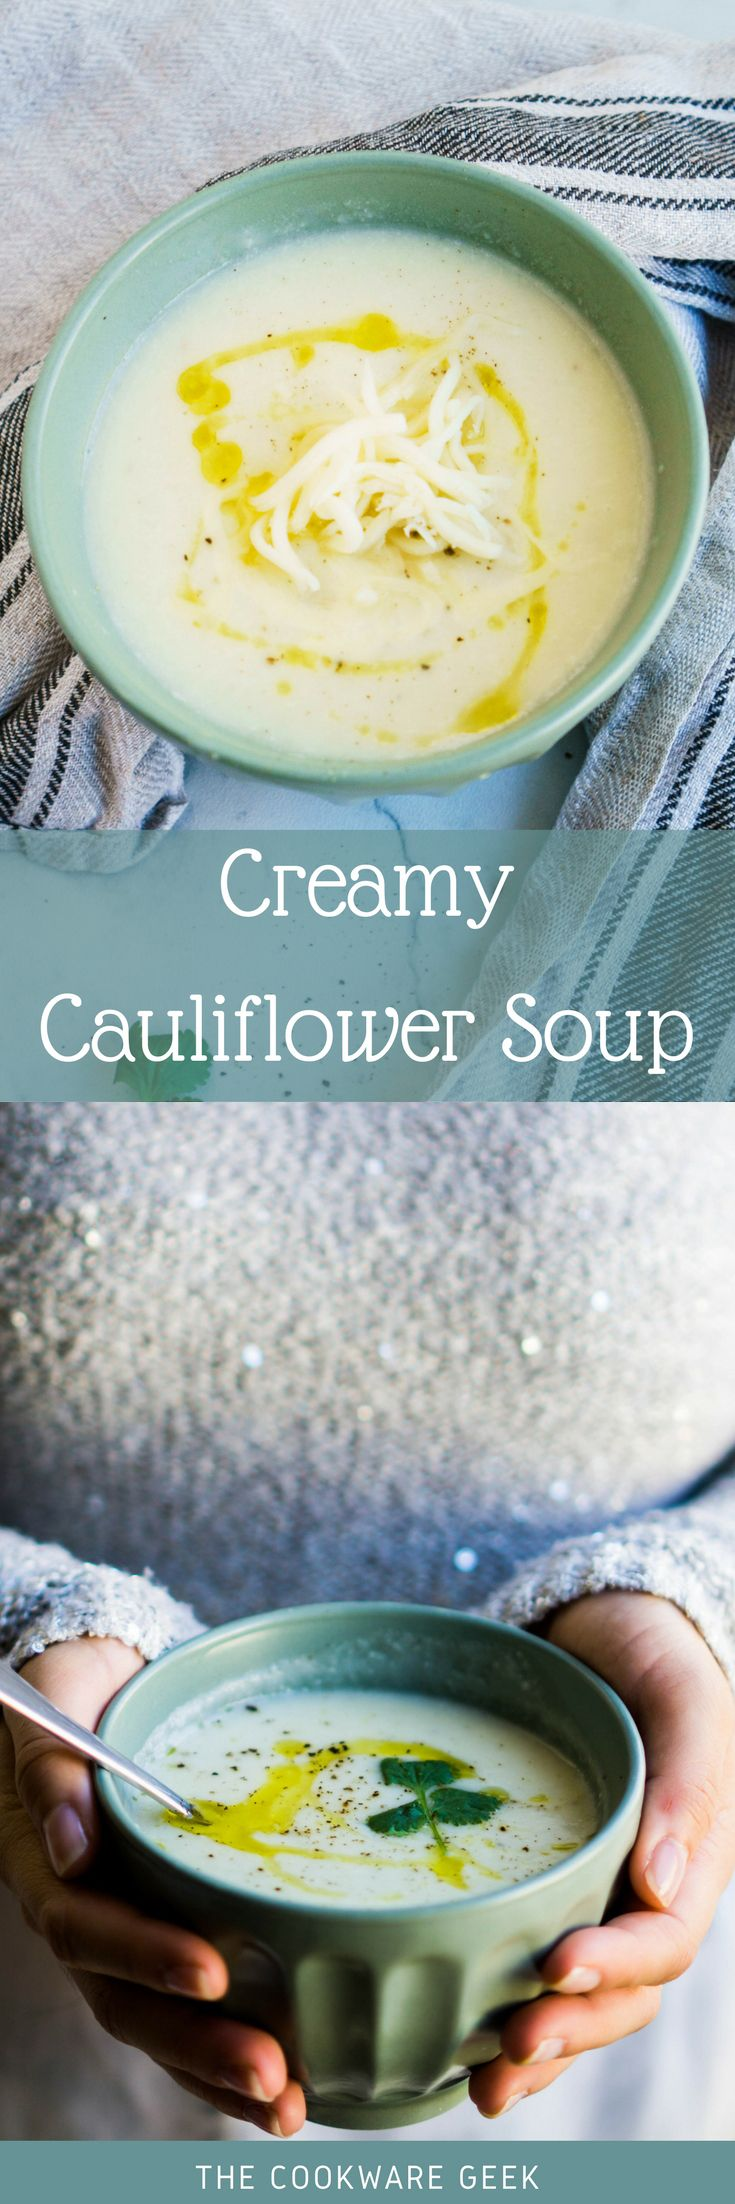 There are recipes that have the only purpose of warming your heart. This extra creamy and cheesy cauliflower soup does exactly that.